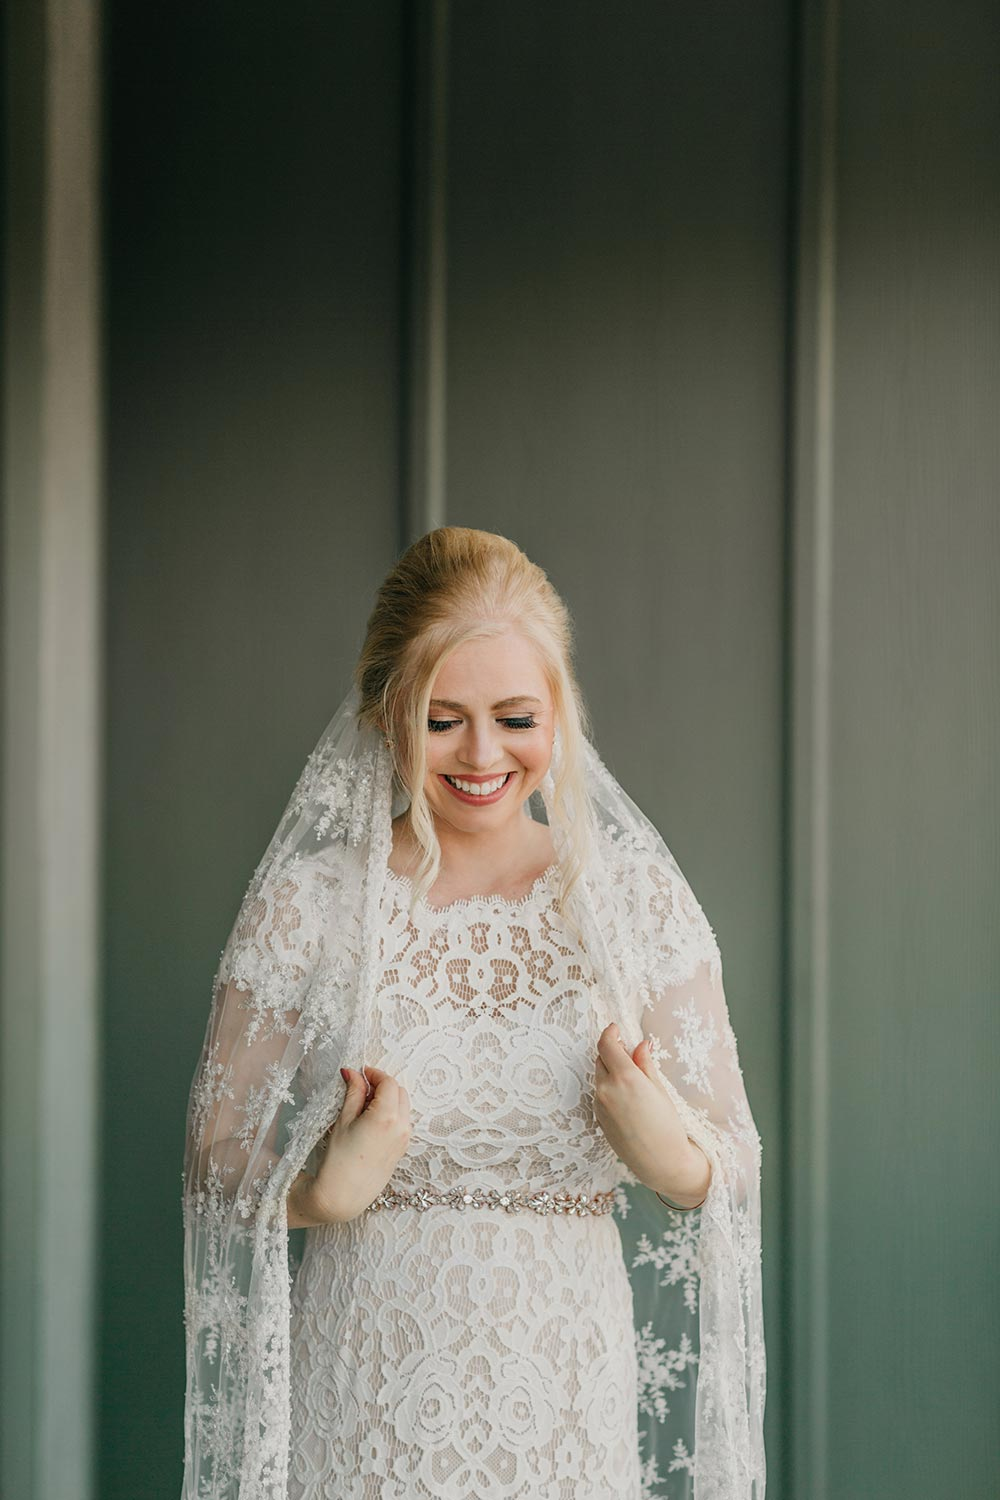 cap-sleeve lace wedding dress and veil